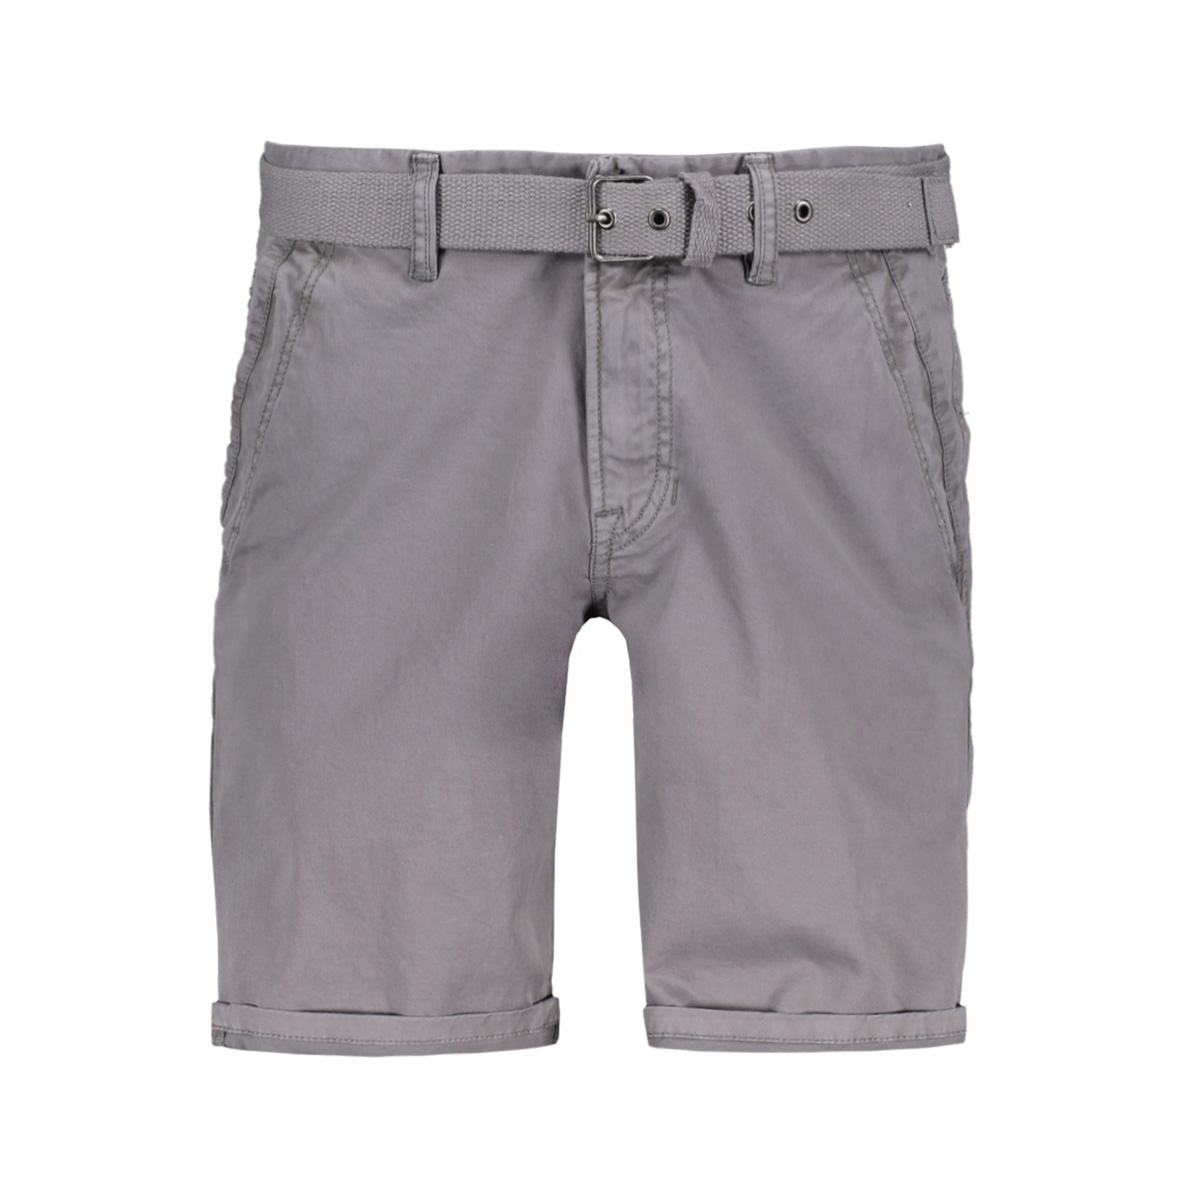 comfort twill chino shorts psh194652 pme legend korte broek 9051